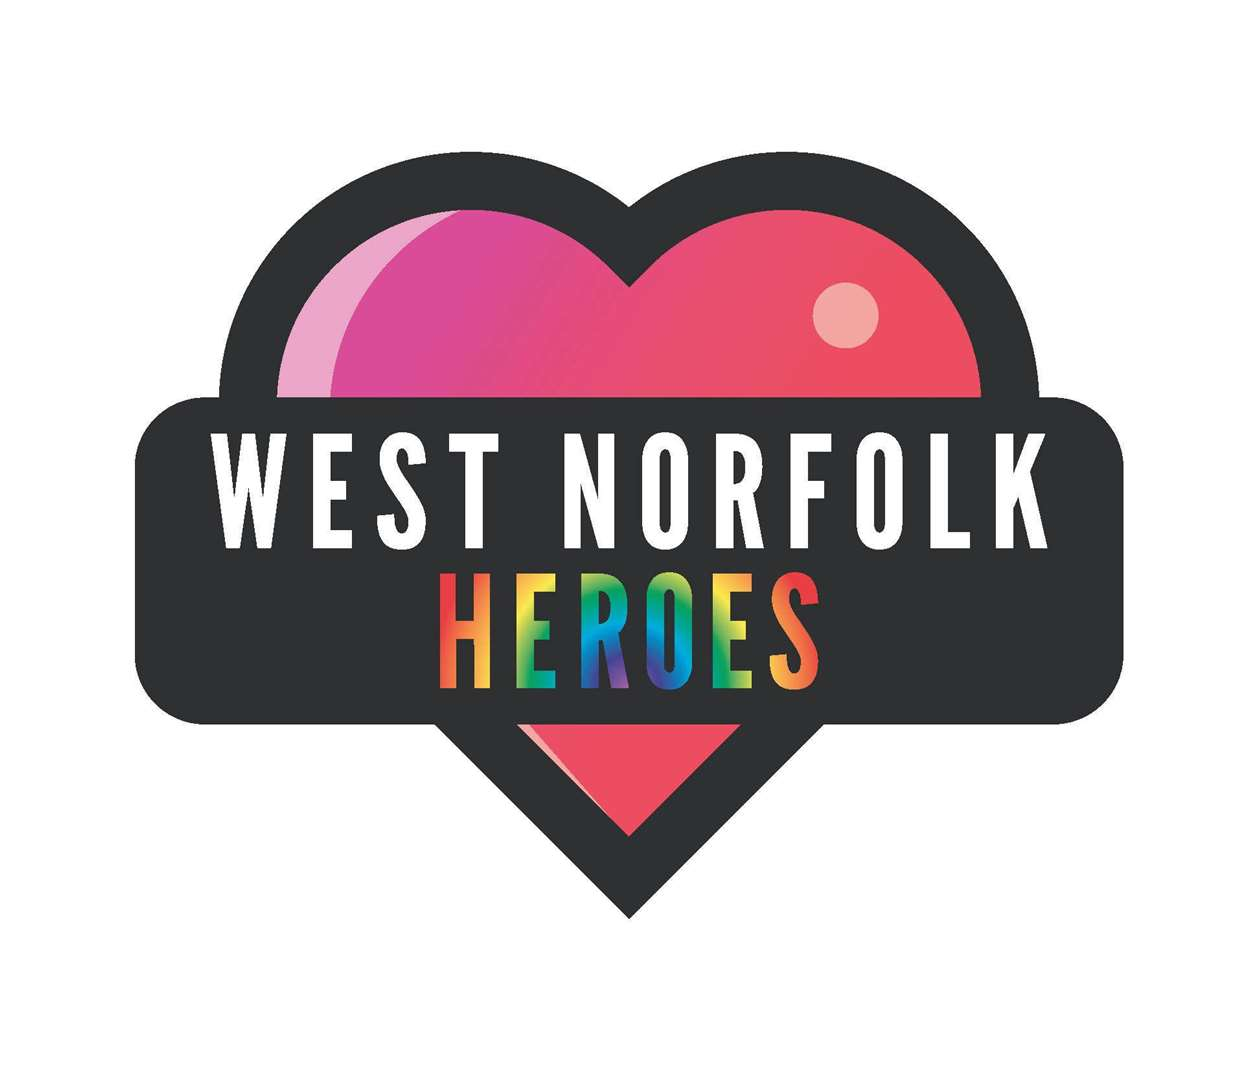 The new Love West Norfolk logo with added rainbow!